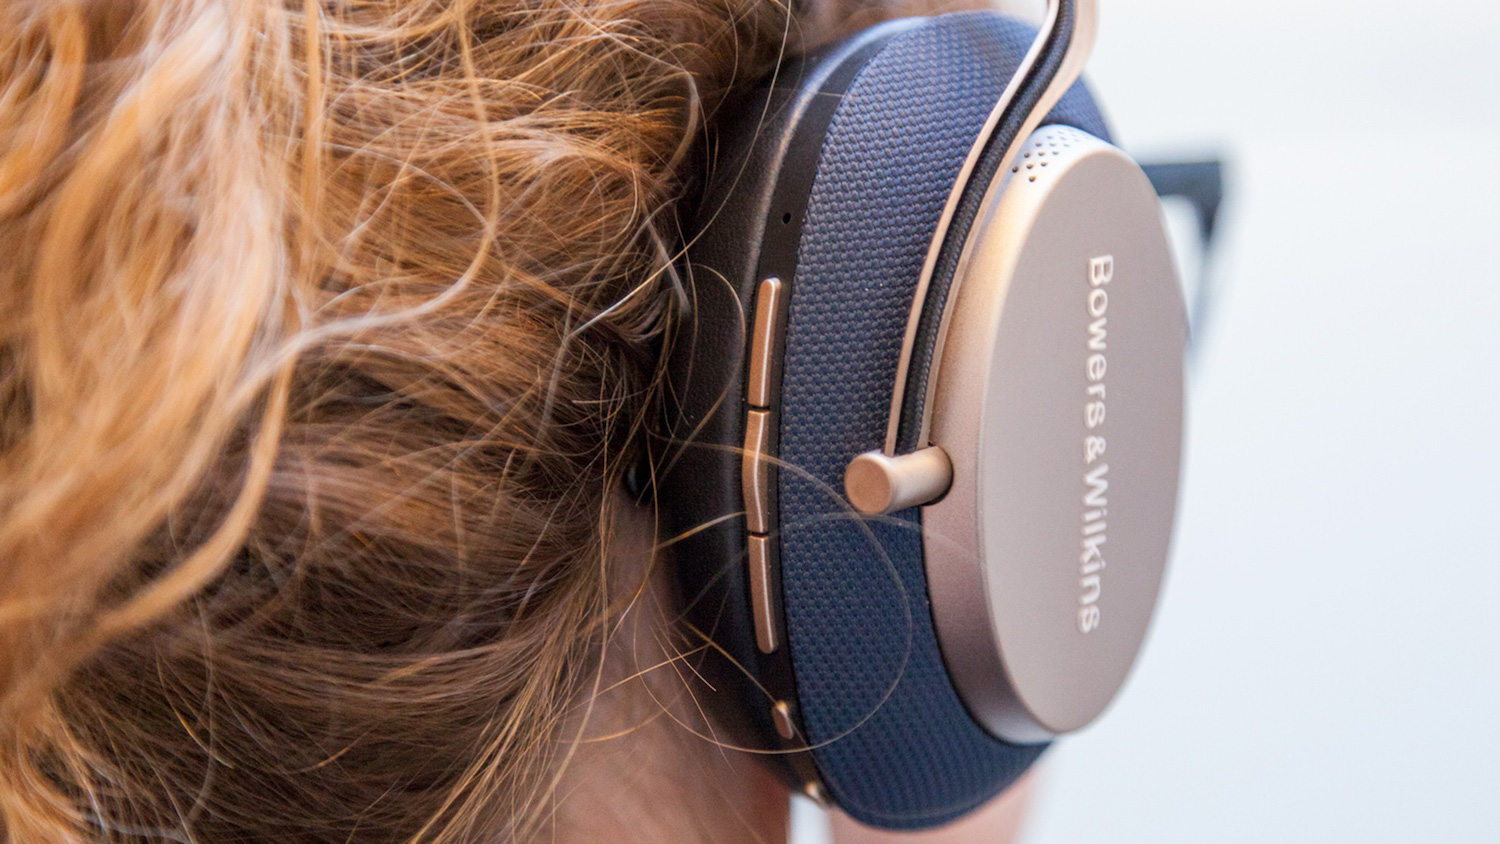 Best noise cancelling headphones: Bowers & Wilkins PX